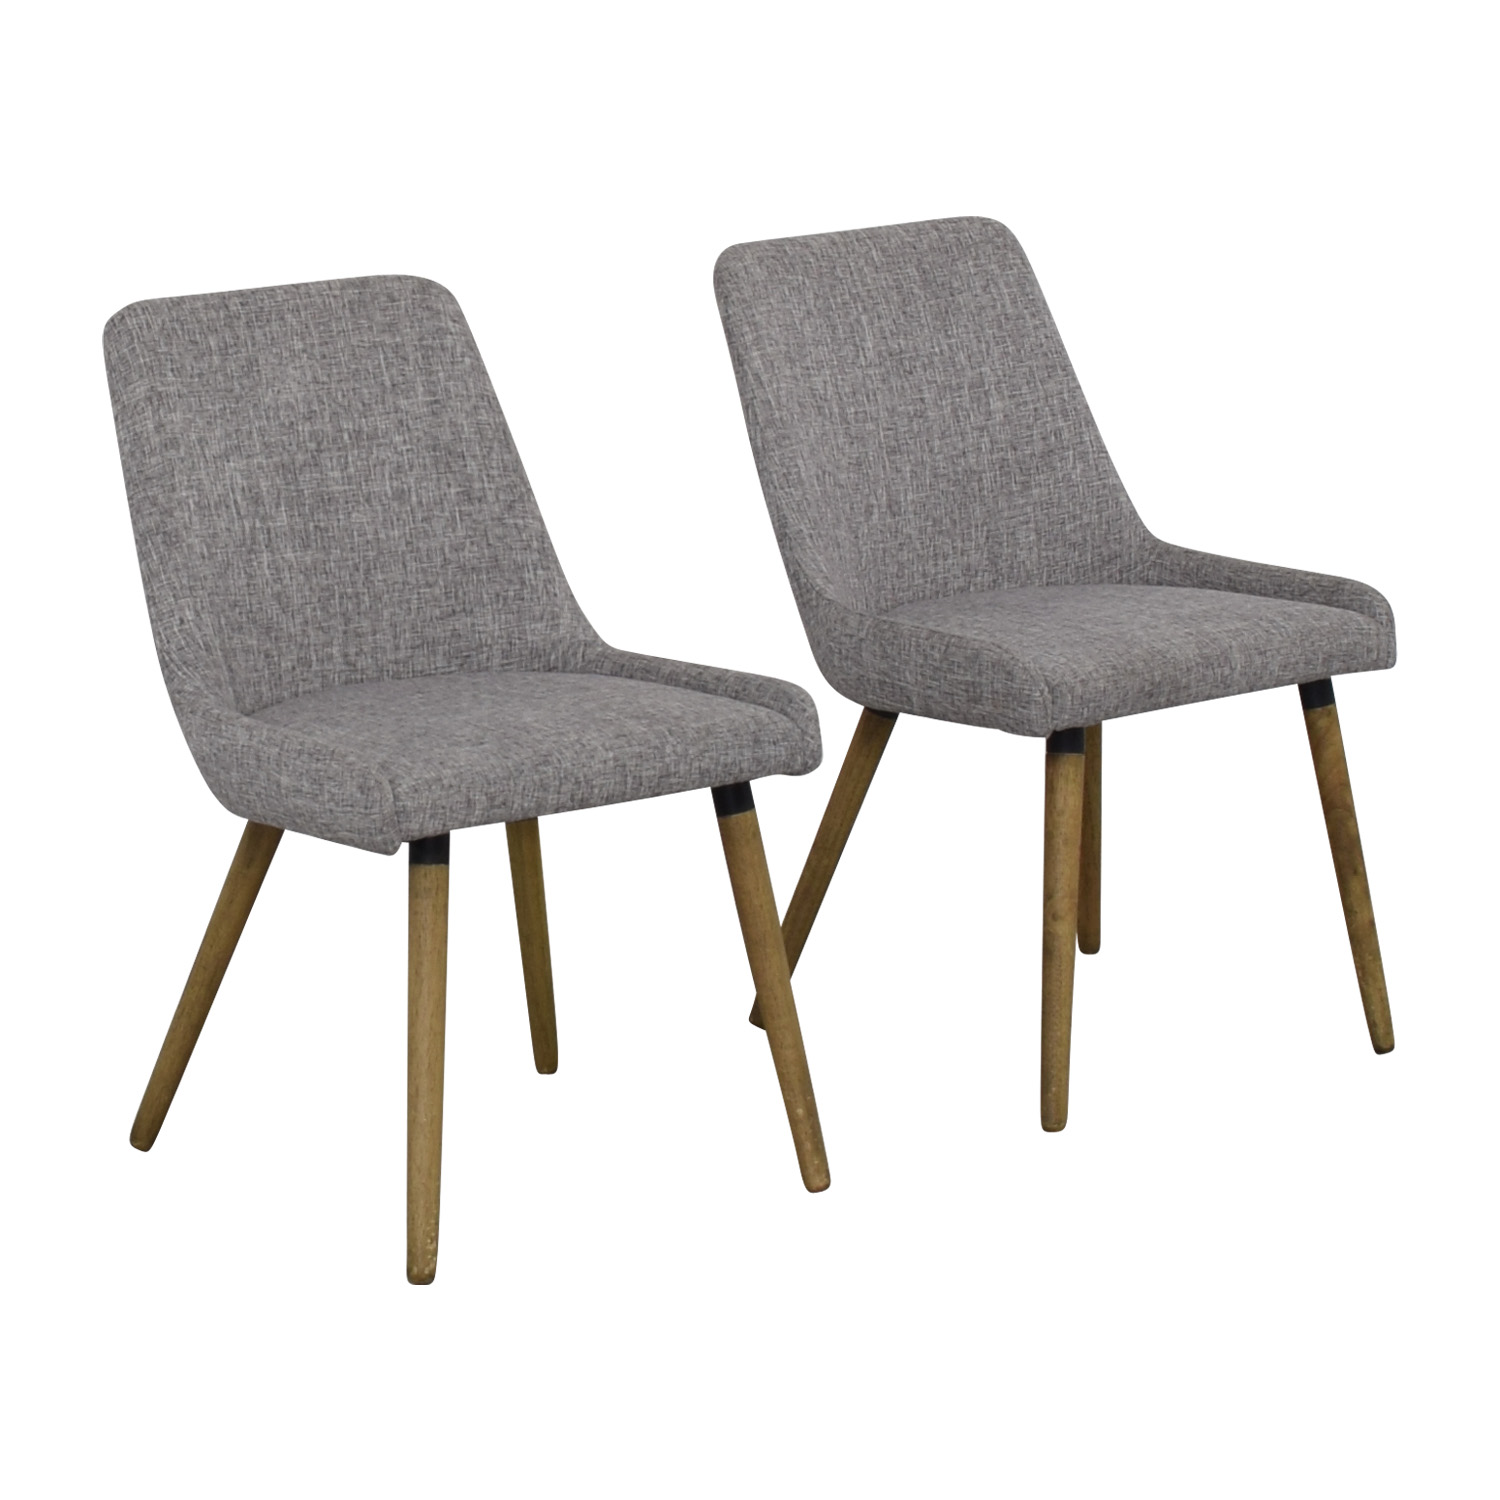 West Elm Mid-Century Upholstered Dining Chairs / Chairs